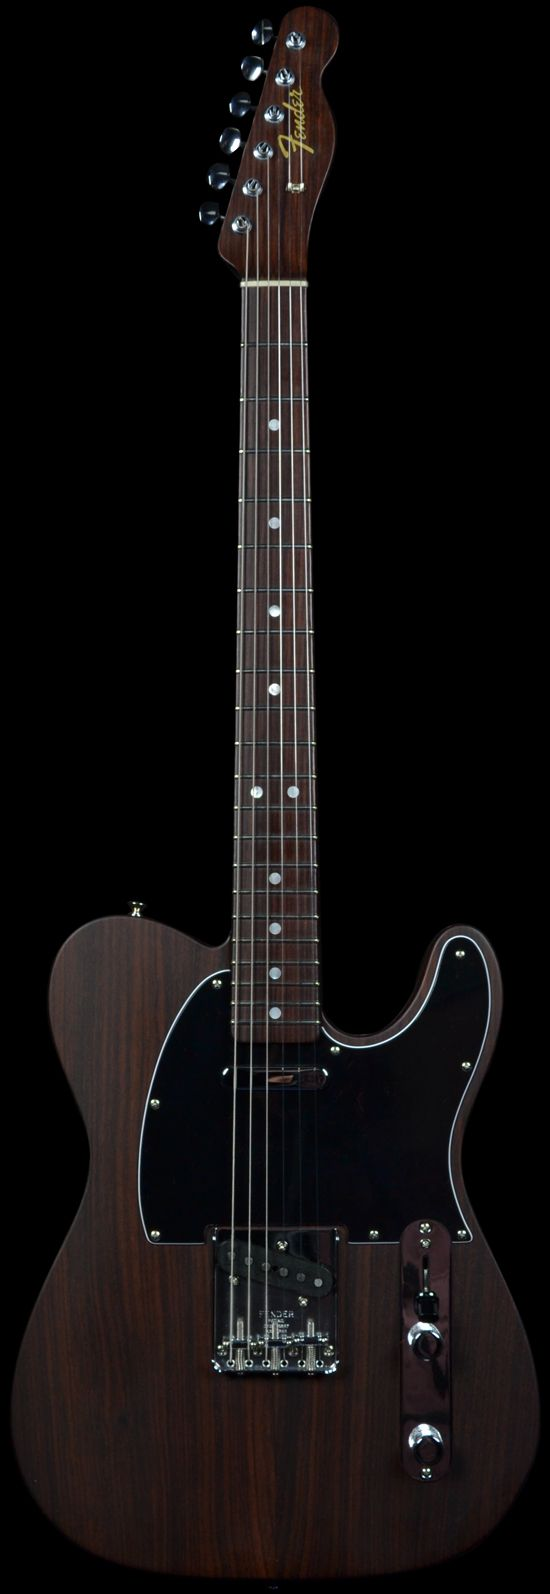 "The first Rosewood Telecaster was given to George Harrison as a gift from Fender to be used in the Beatles movie ""Let It Be"" 1969. Its production ran from 1969 to 1972"